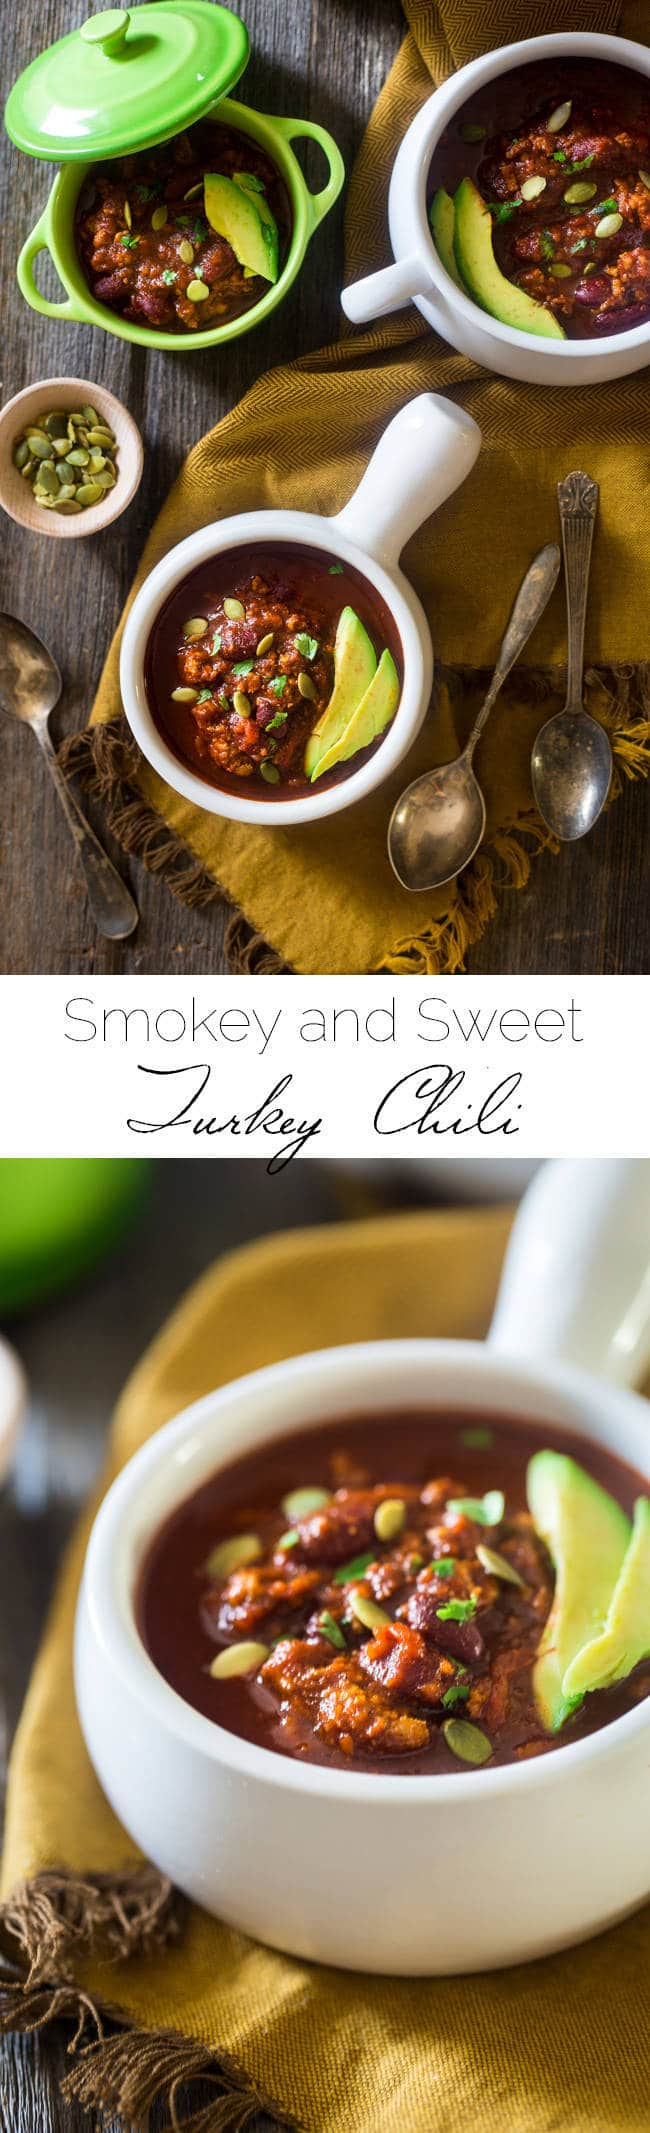 This smokey-sweet turkey chili is an easy, healthy and gluten free weeknight meal that's perfect for cold, winter nights. It's healthy comfort food at it's best! | Foodfaithfitness.com | @FoodFaithFit